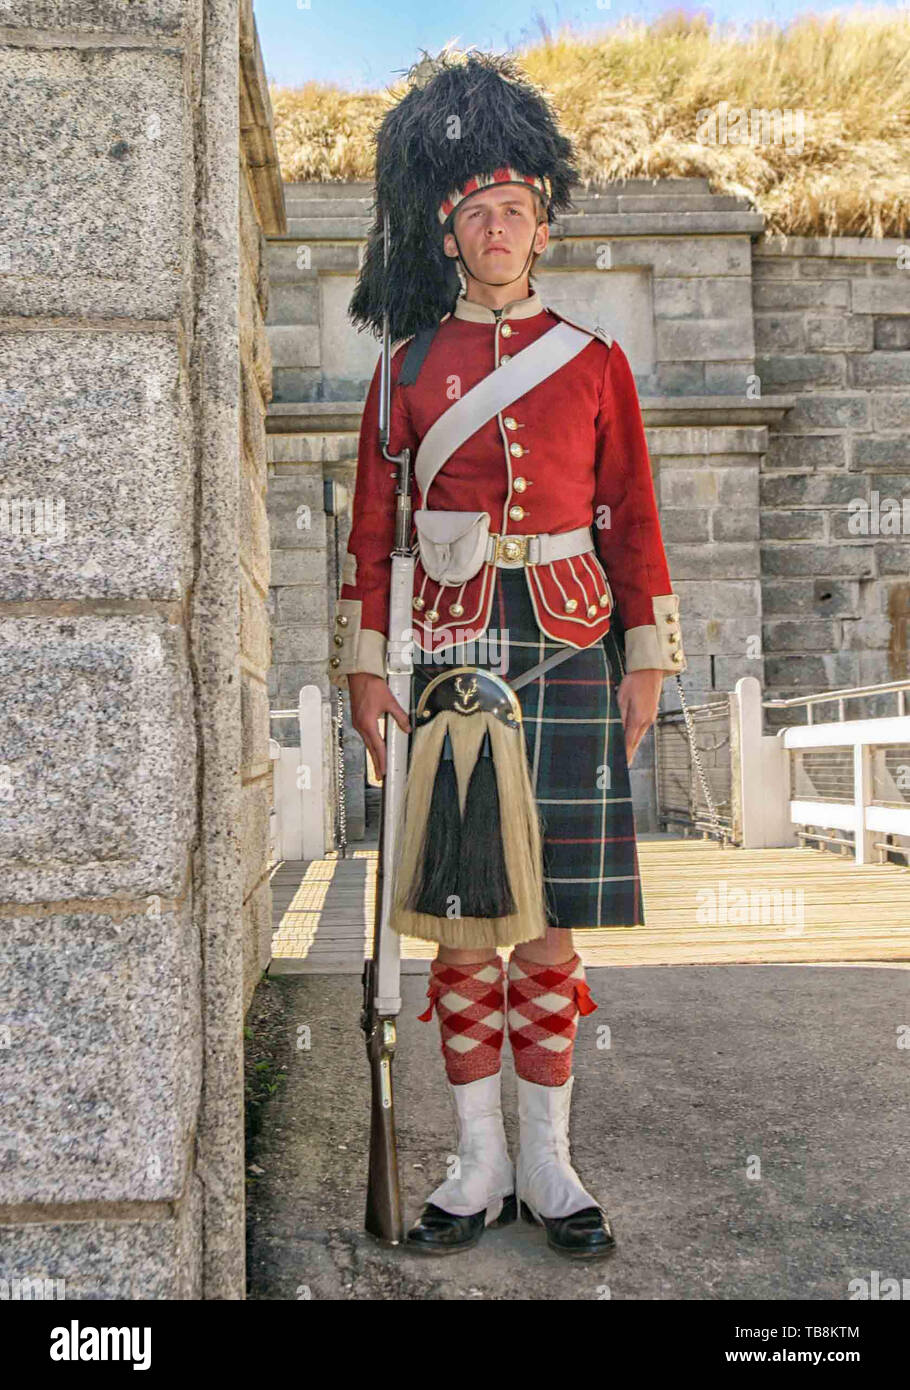 Halifax, Nova Scotia, Canada. 5th Sep, 2005. Standing at attention while on guard, re-enactors dressed as soldiers of the 78th Highland Regiment, on Citadel Hill (Fort George), a National Historic Site in Halifax, Nova Scotia. A living history museum, the fort is among the most visited sites in Atlantic Canada. Credit: Arnold Drapkin/ZUMA Wire/Alamy Live News - Stock Image